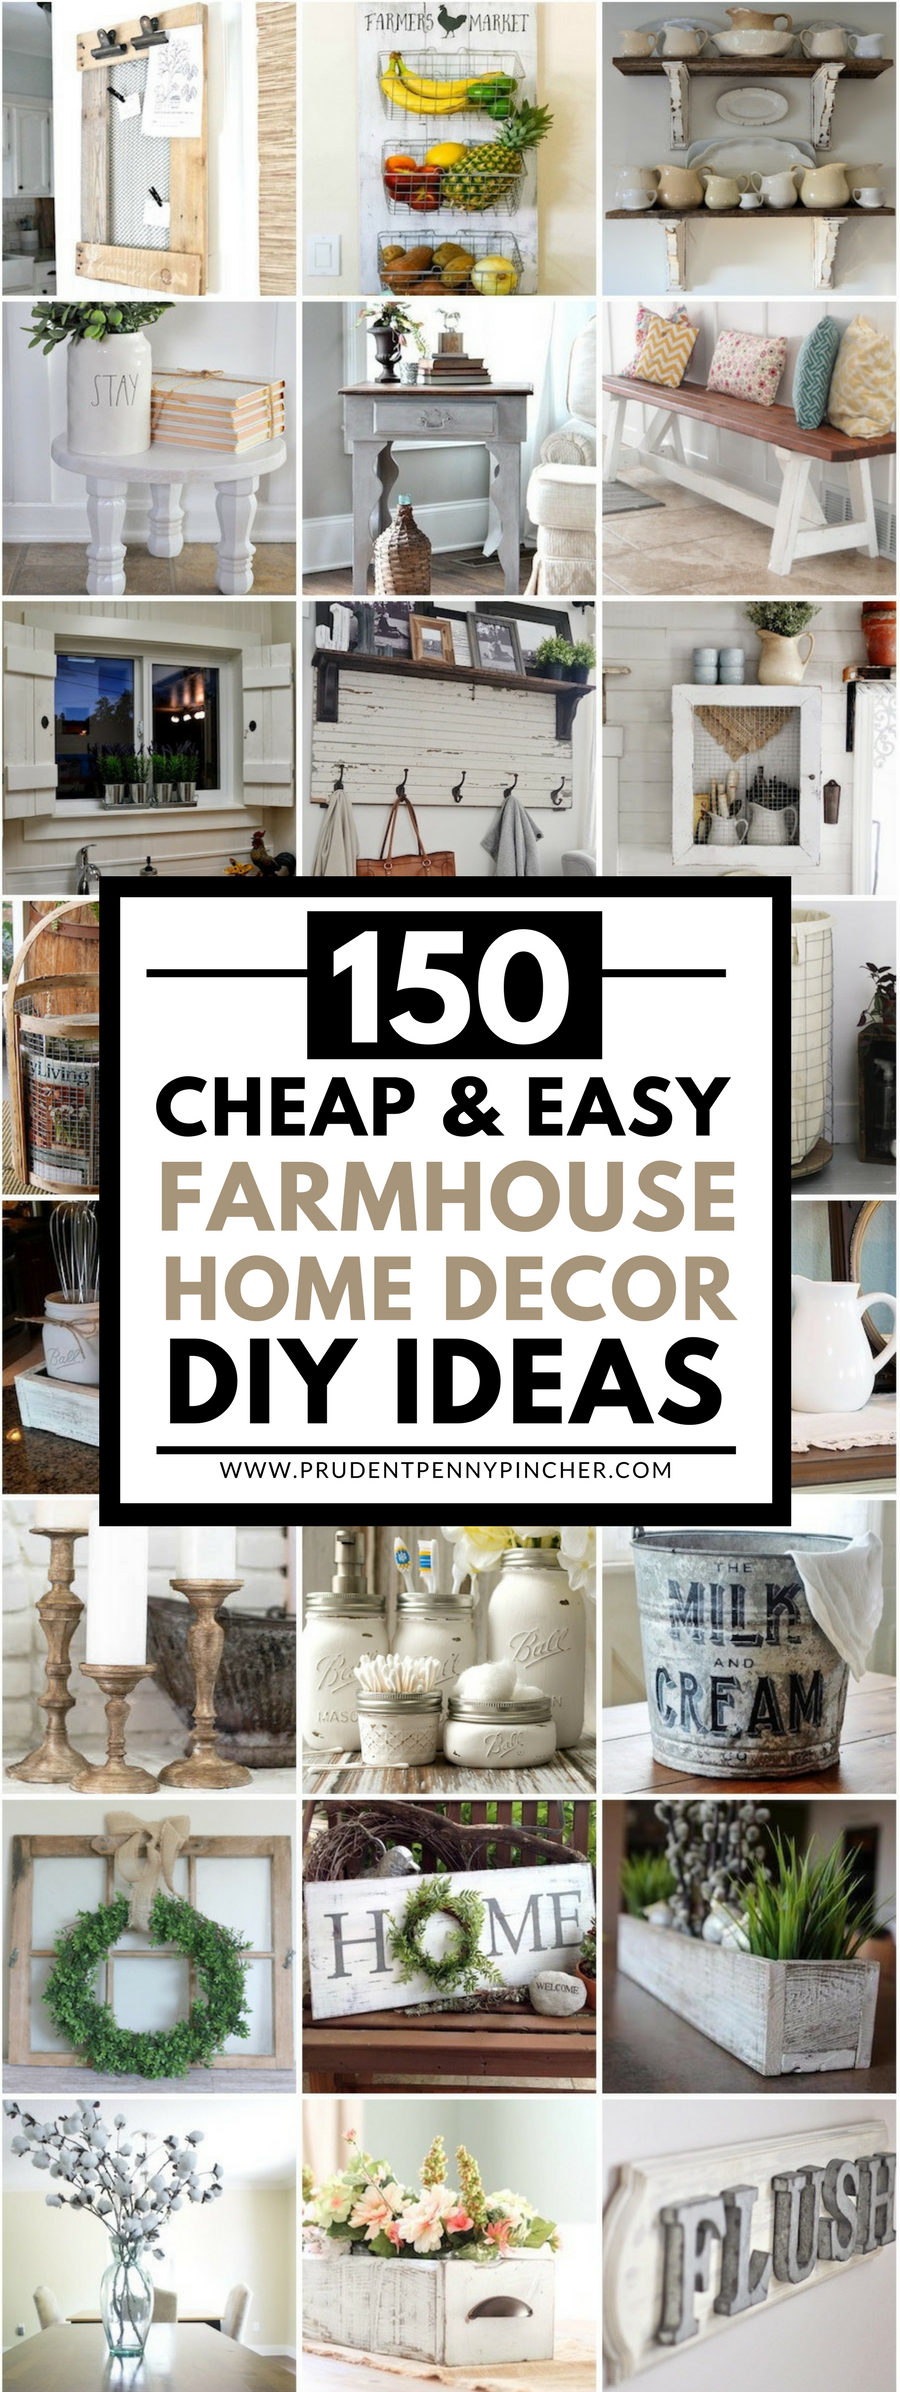 150 Cheap And Easy Diy Farmhouse Style Home Decor Ideas Home Decorators Catalog Best Ideas of Home Decor and Design [homedecoratorscatalog.us]